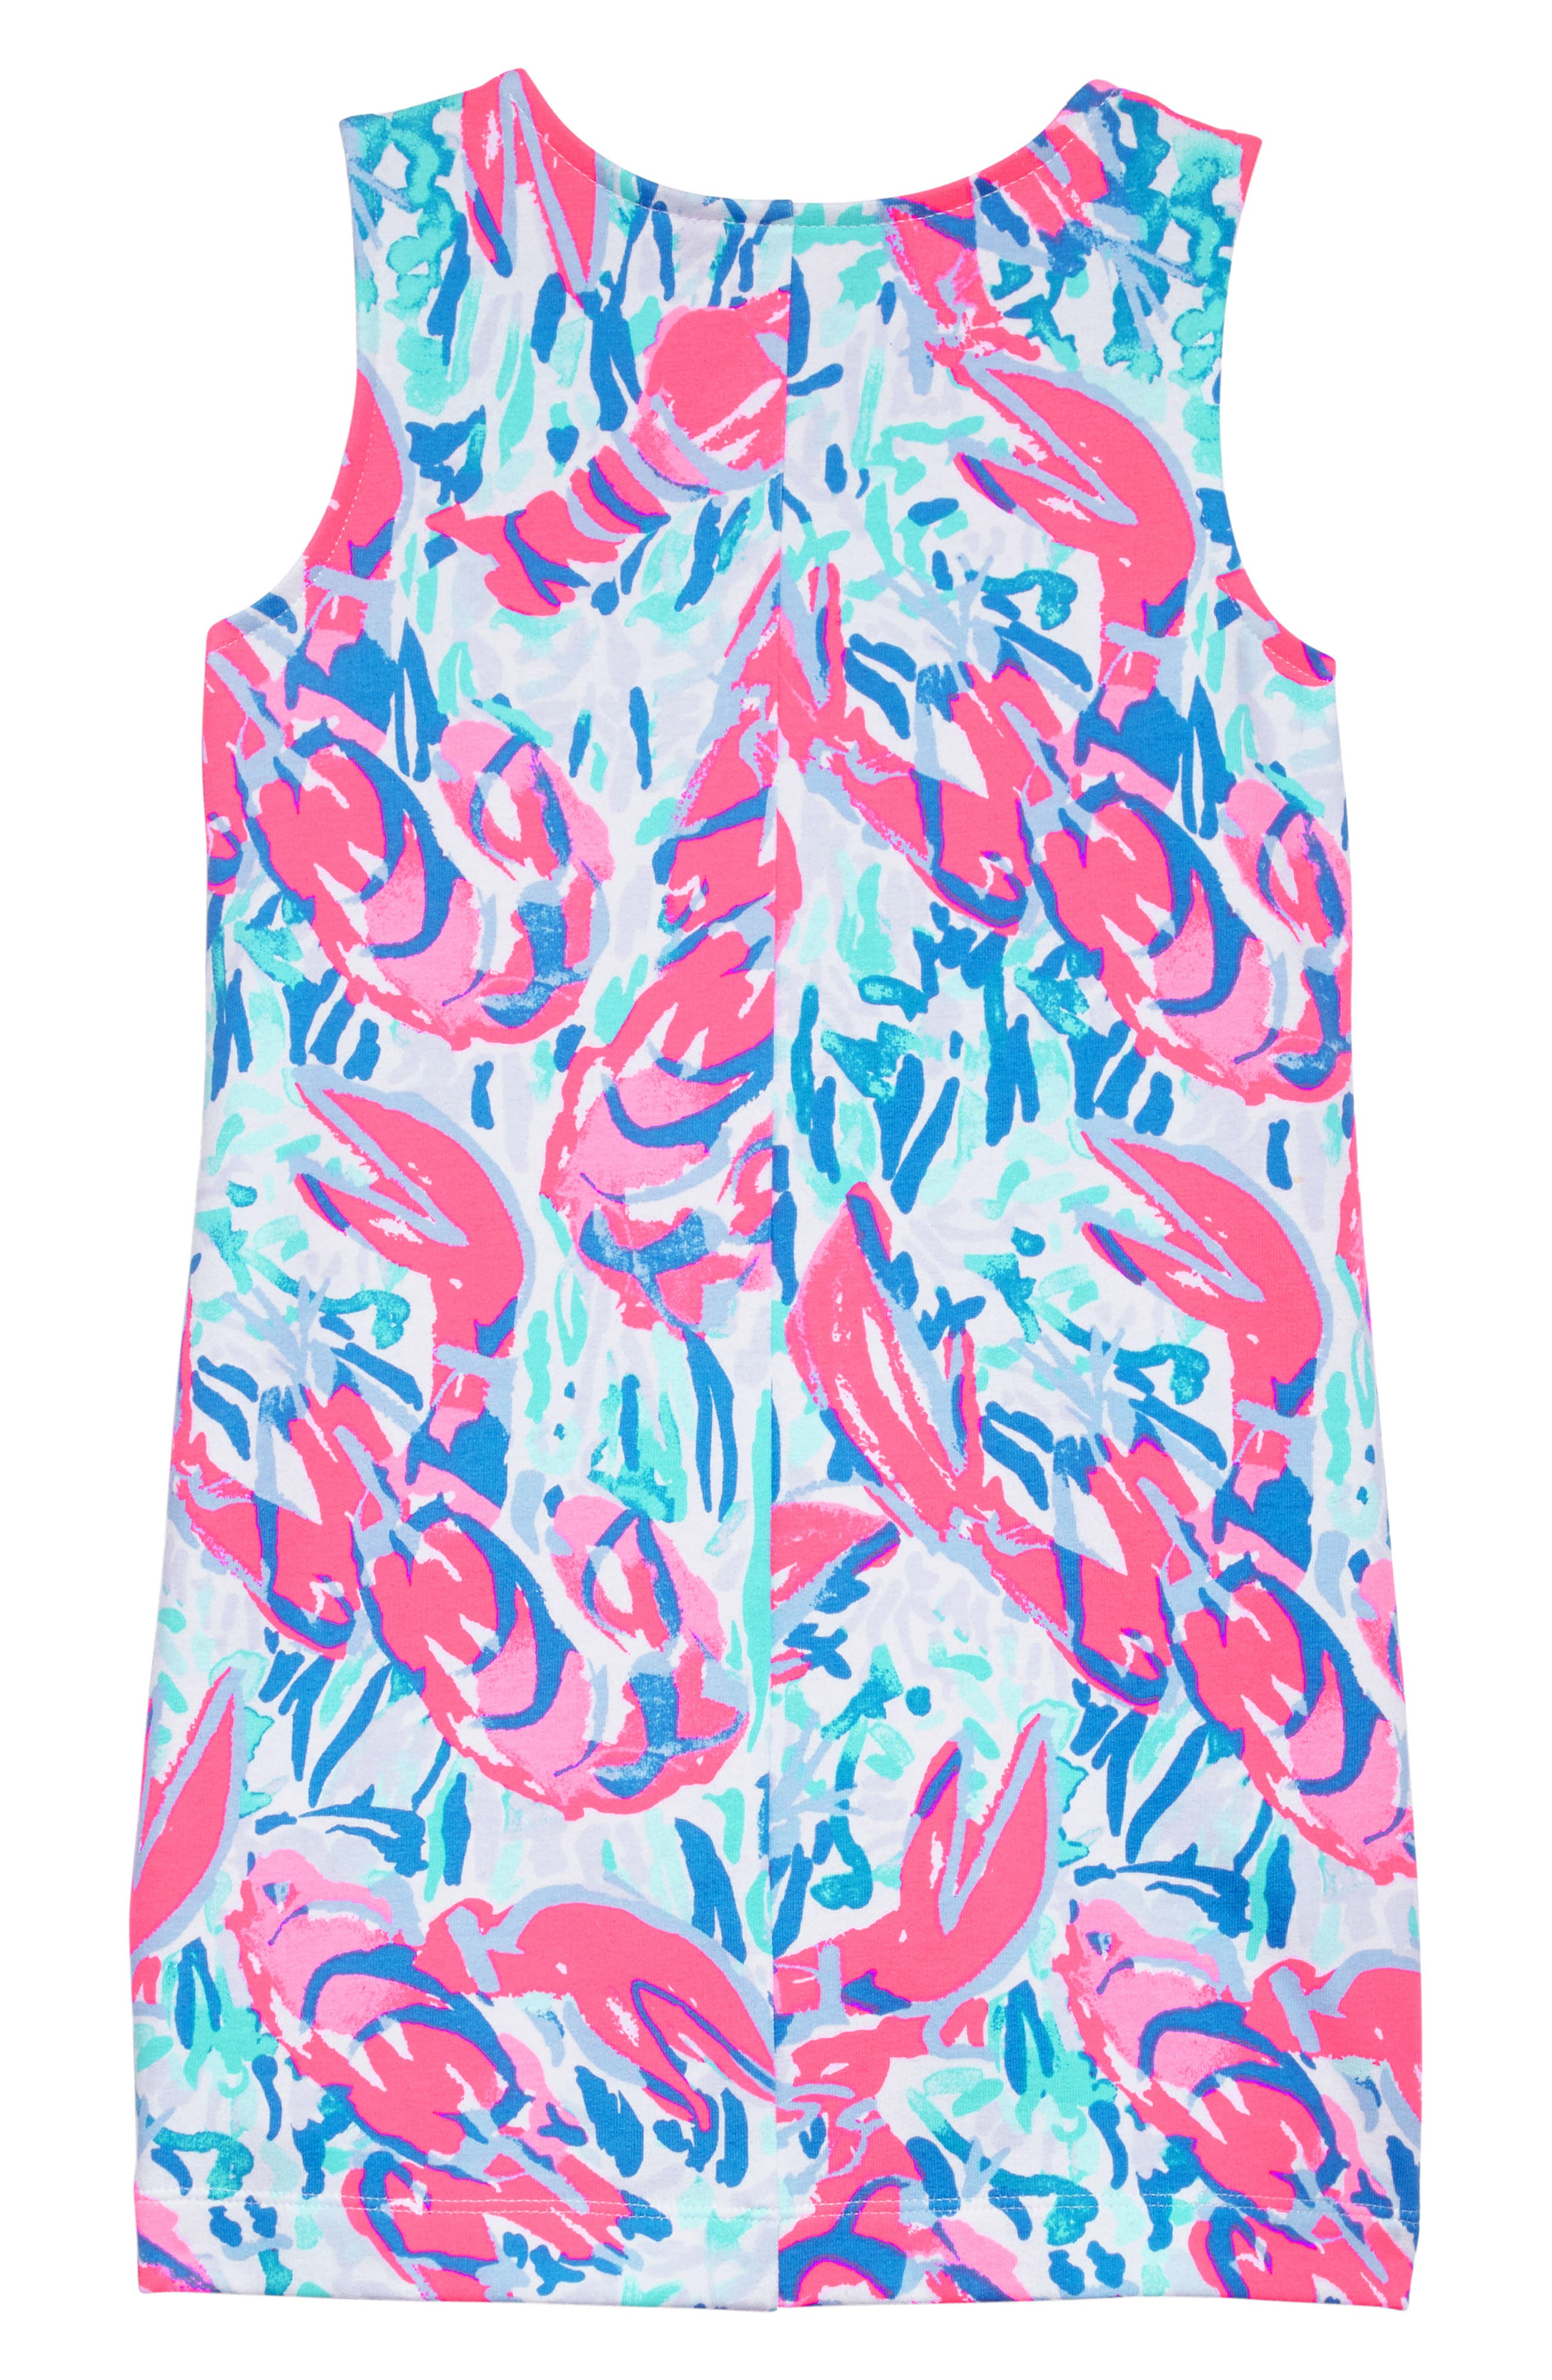 Mini Harper Shift Dress,                             Alternate thumbnail 2, color,                             Cosmic Coral Cracked Up